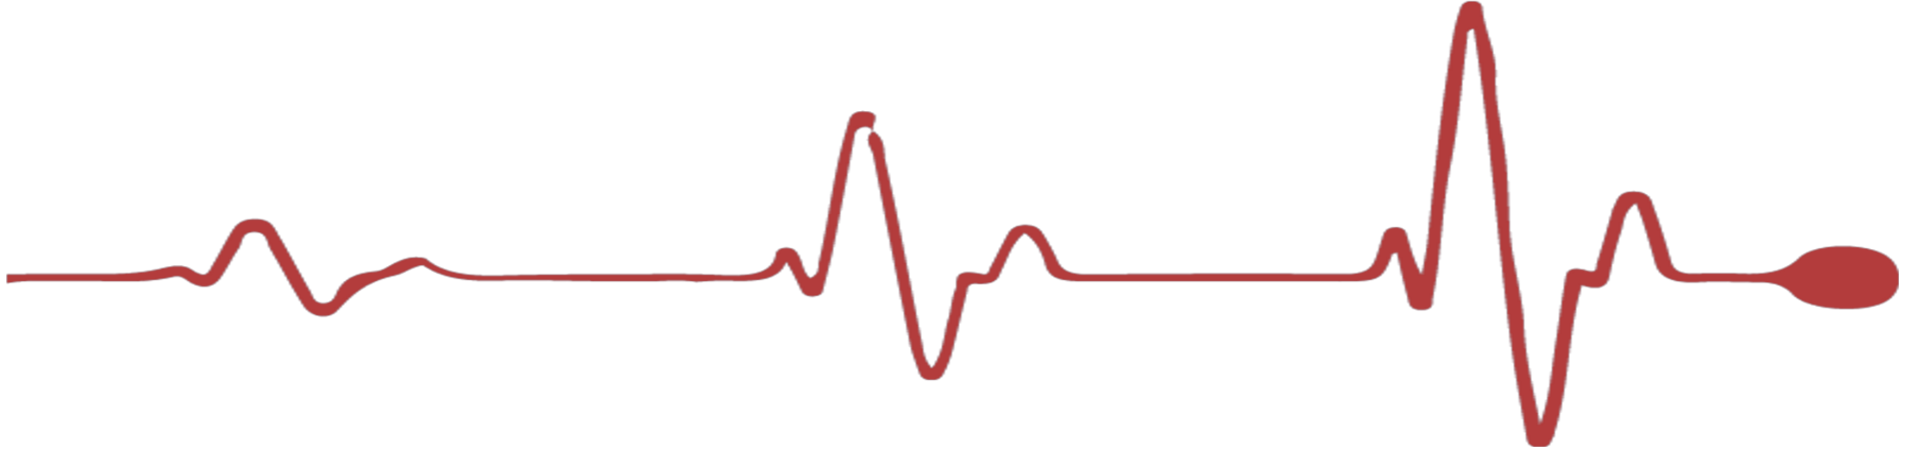 Line clipart heart beat #11 - Heartbeat PNG HD